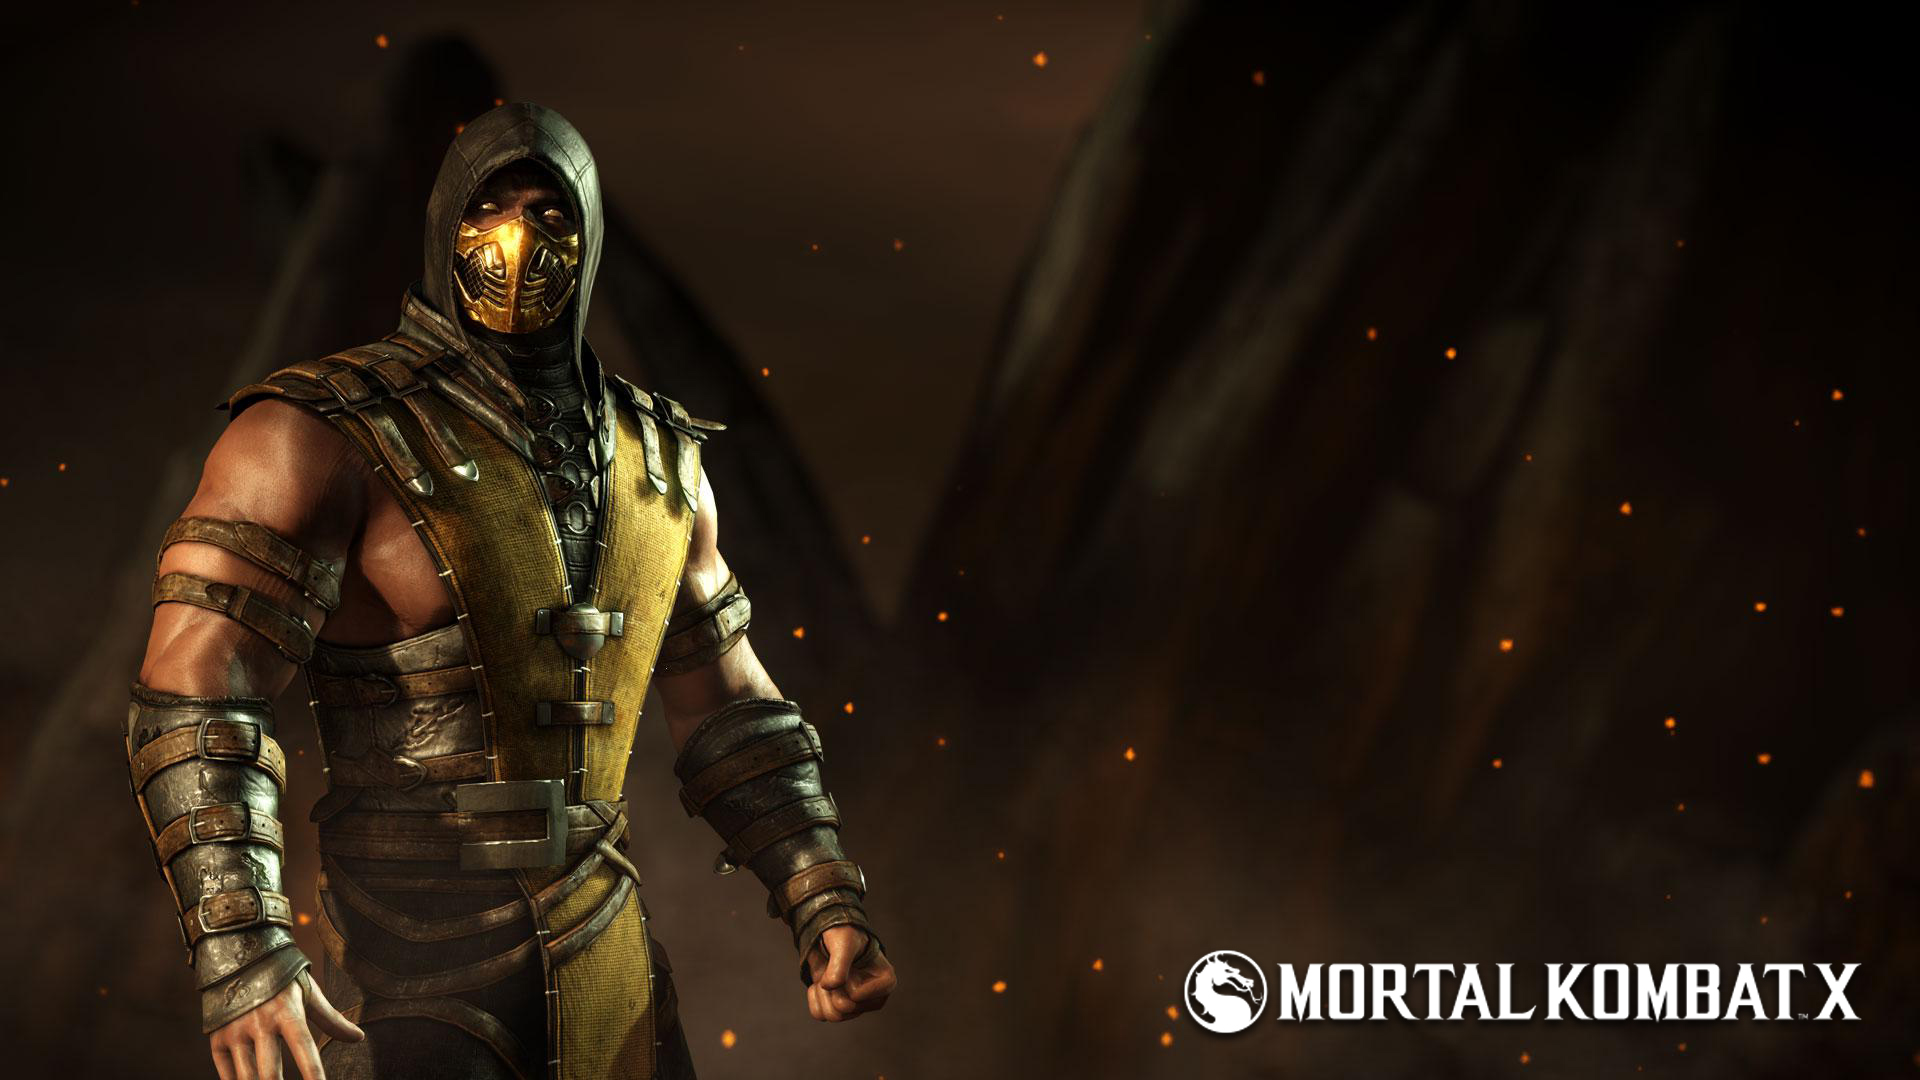 Pictures Of Scorpion From Mortal Kombat As Playstation 4